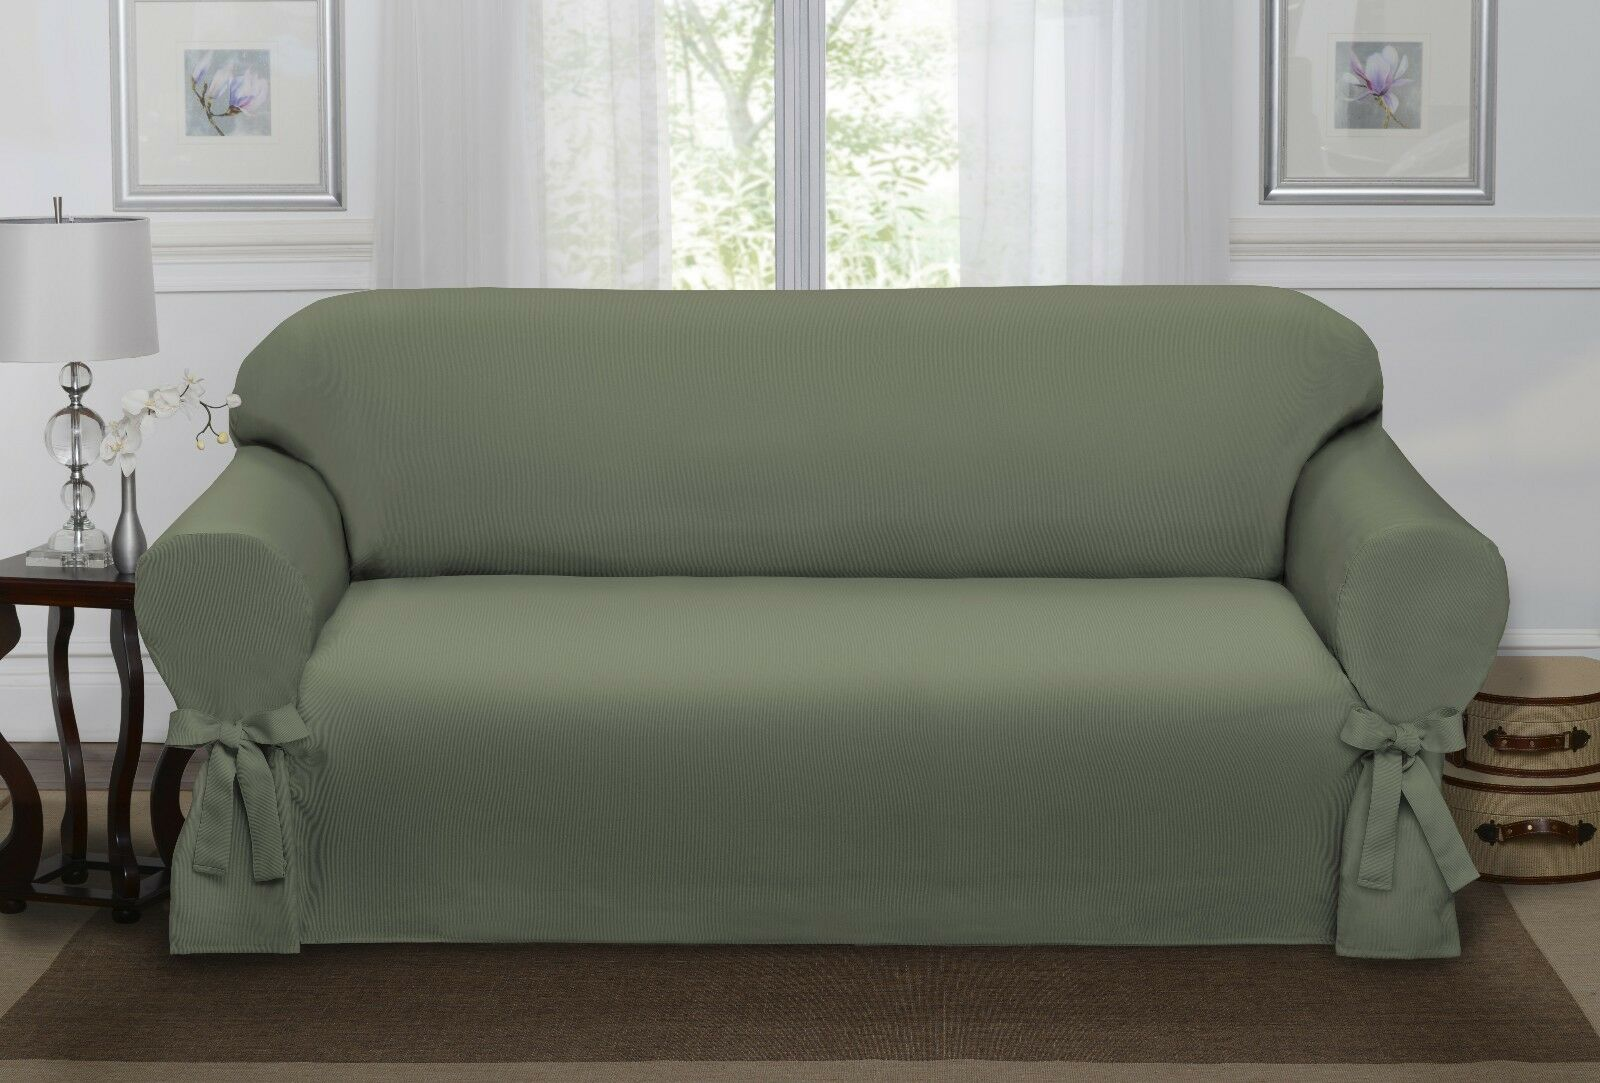 Sage green loden lucerne sofa slipcover couch cover sofa for Couch und sofa